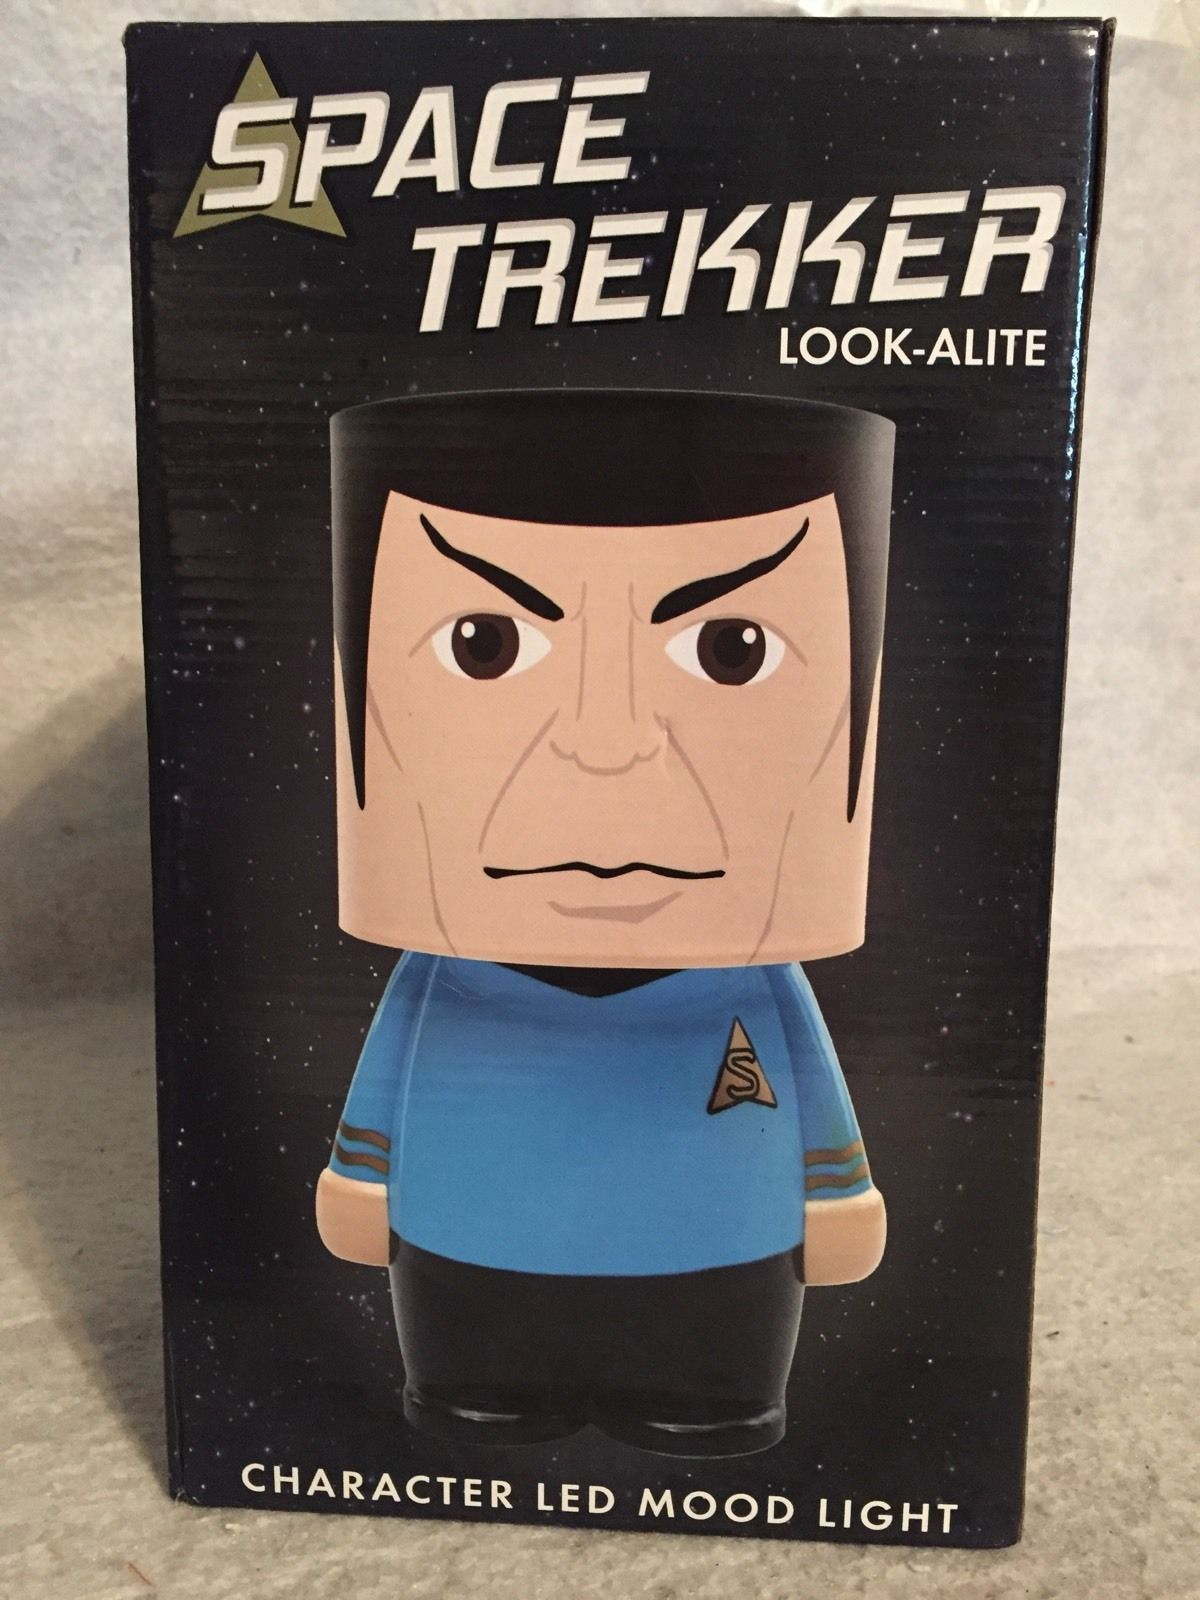 Primary image for Space Trekker Star Trek New LED Look-ALite Mood Lamp Light. Spock. UNIQUE.  USB